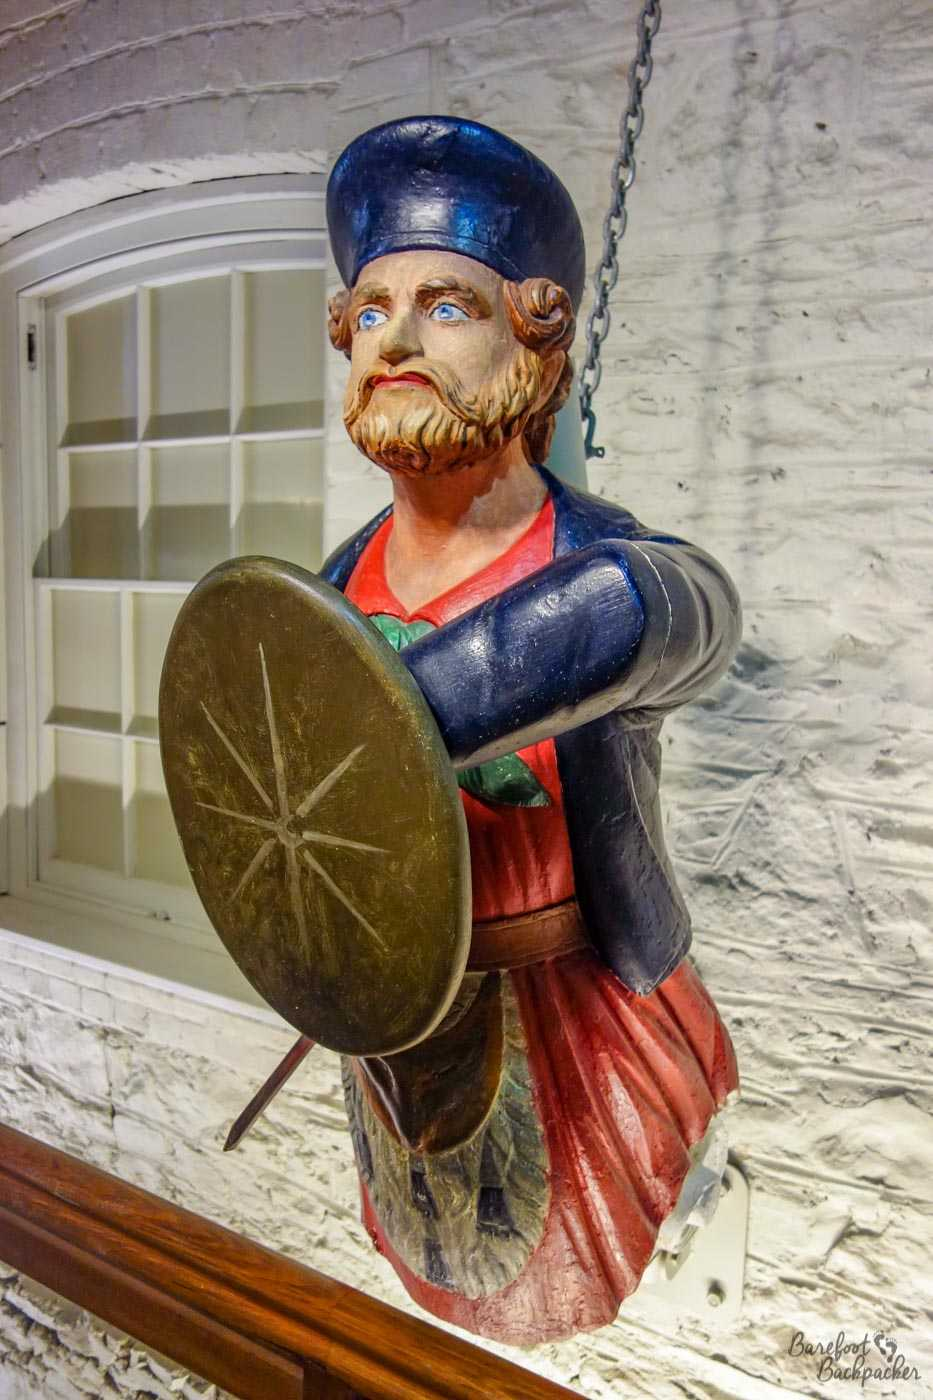 A ship's figurehead on the wall of the Maritime Museum. The museum has quite a number of these; this particular one is of a bearded man with blue hat, red tunic, and holding a shield in front of him.